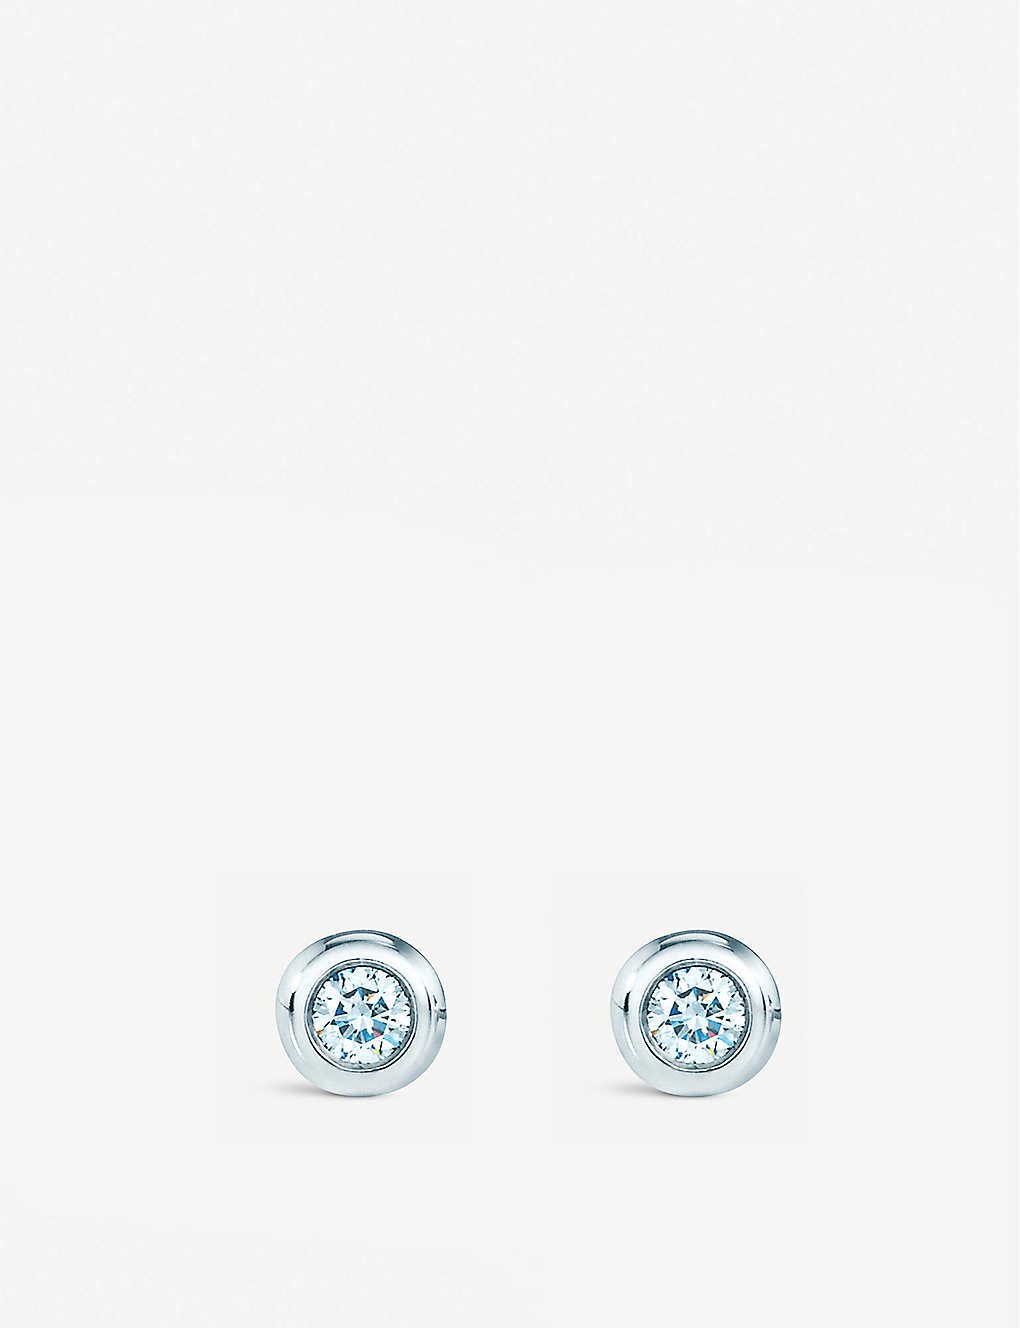 fbbcc881e TIFFANY & CO Elsa Peretti® Diamonds by the Yard® earrings in sterling silver